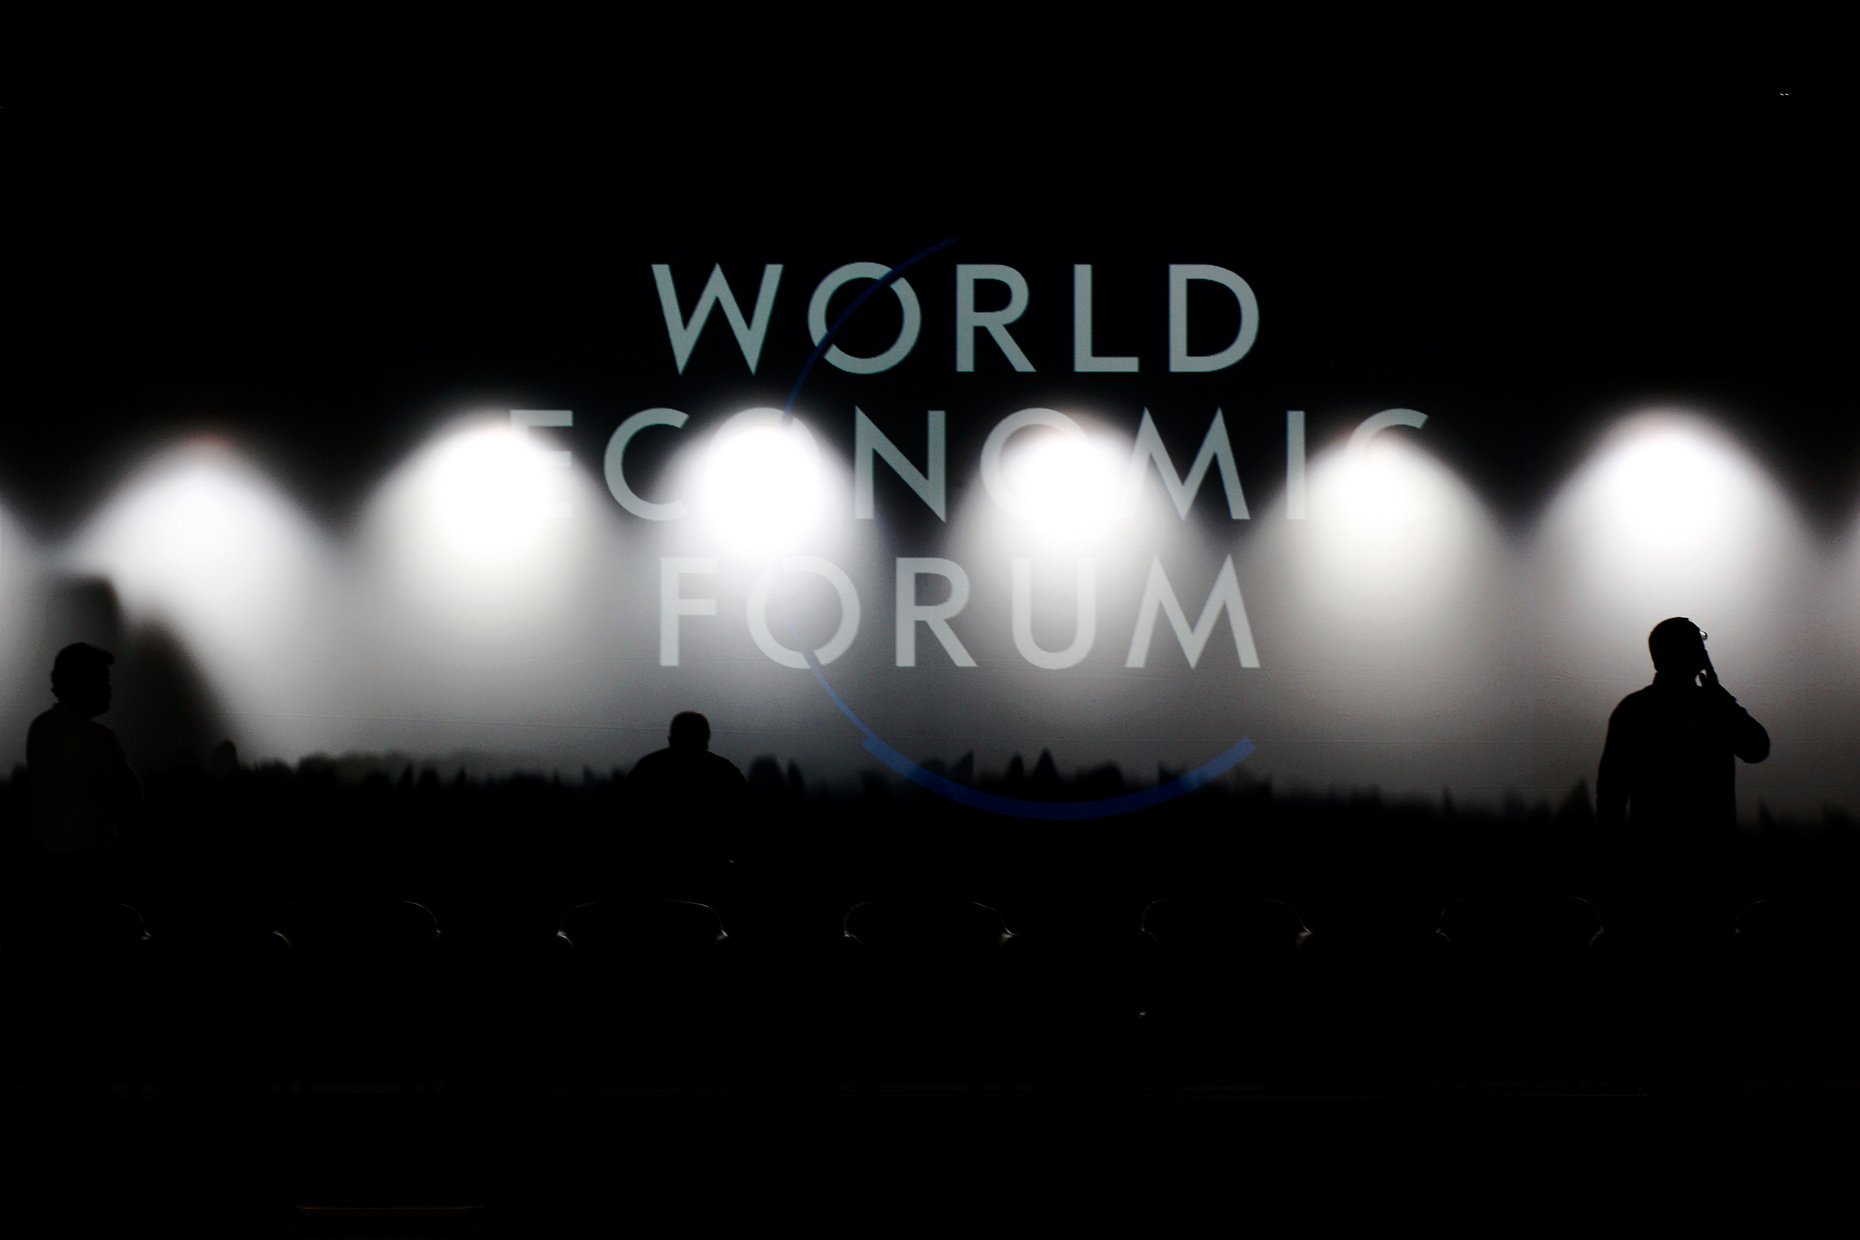 For Time - Davos, World Economic Forum